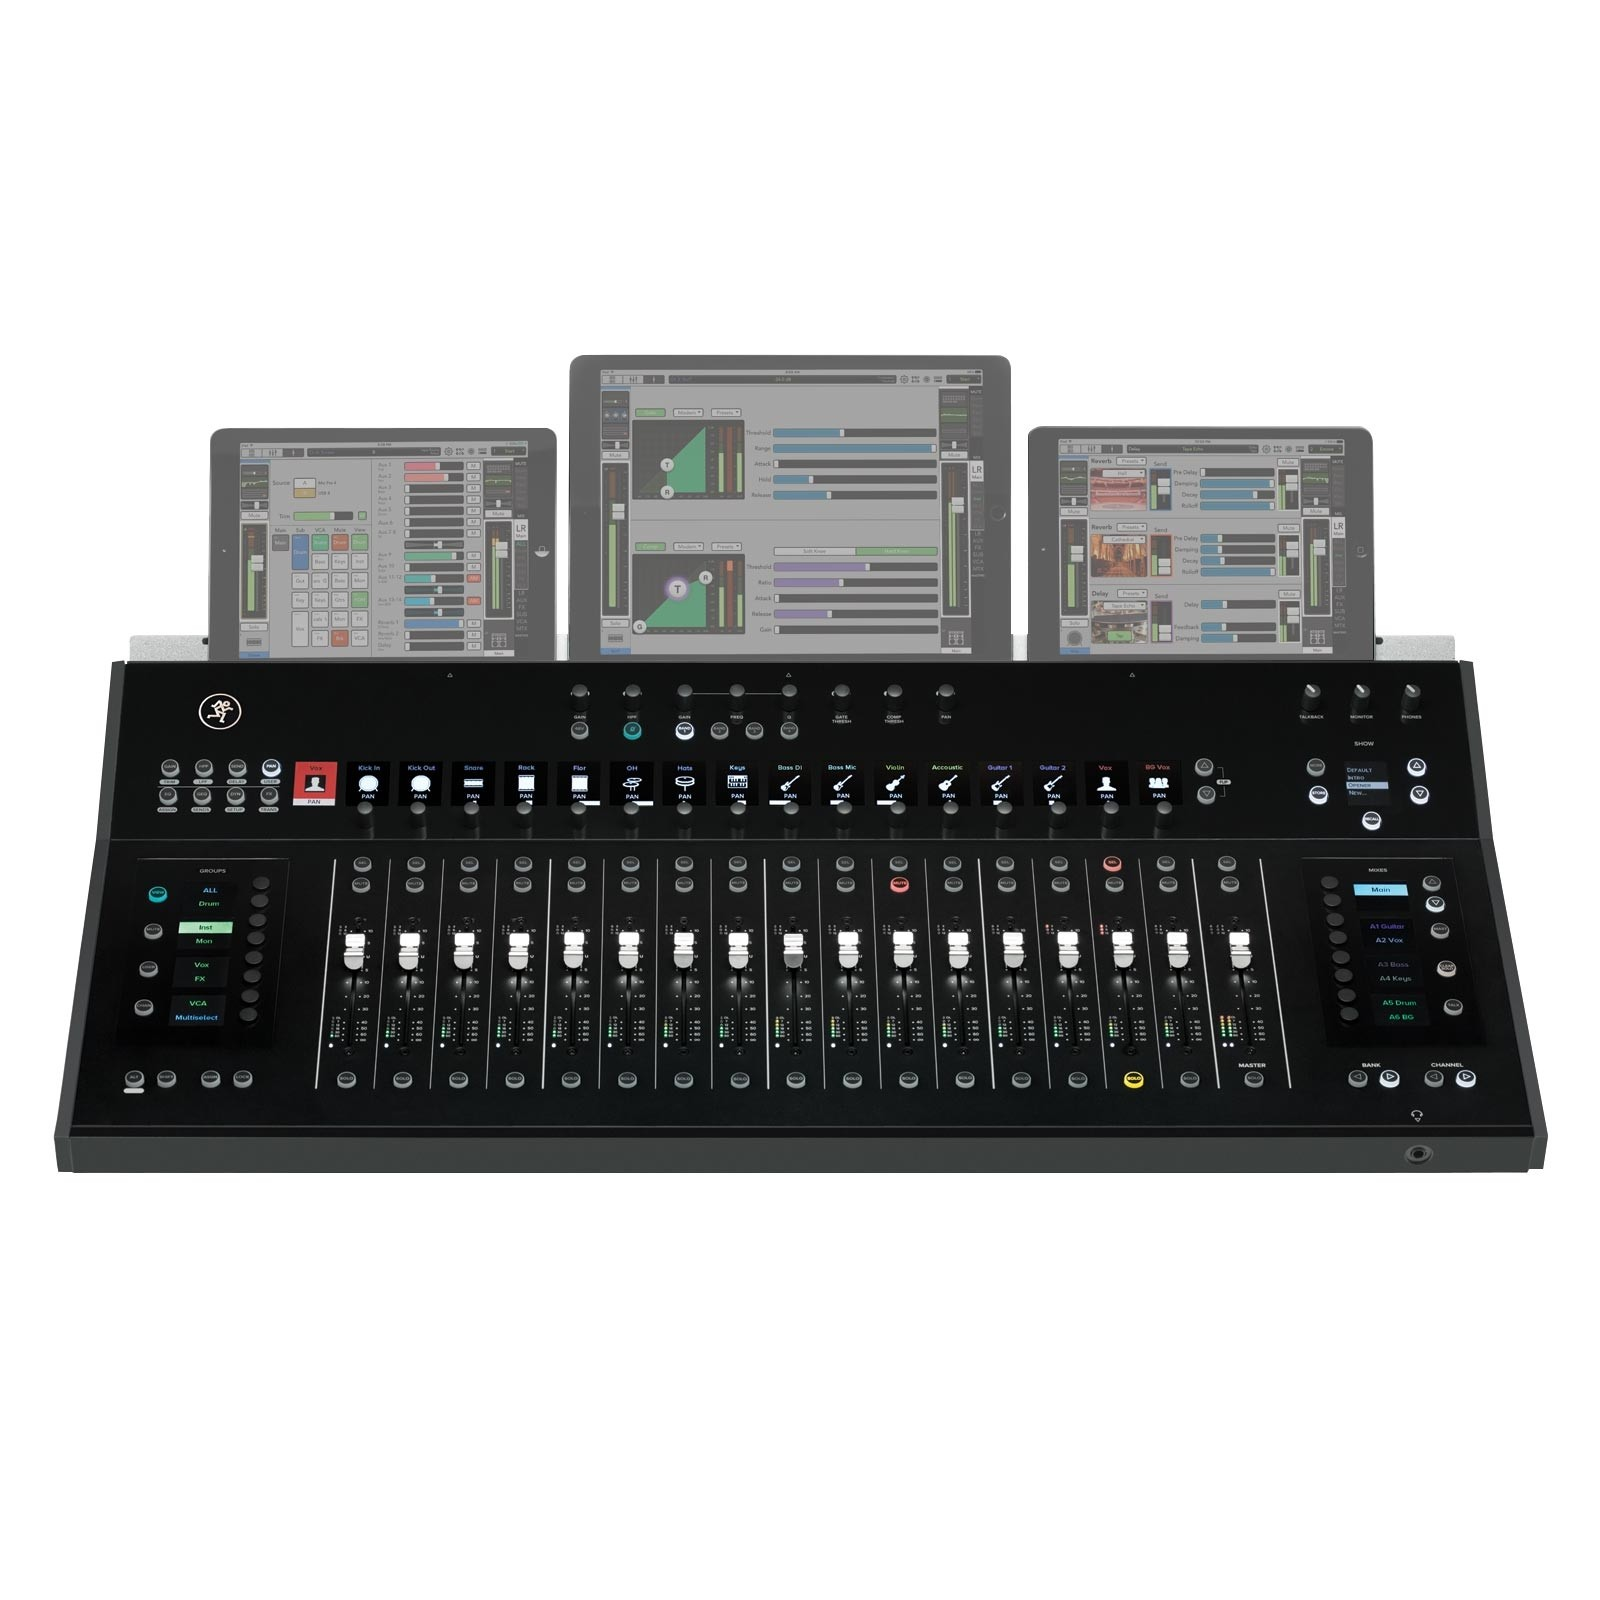 mackie axis dc16 digital mixing system control surface. Black Bedroom Furniture Sets. Home Design Ideas